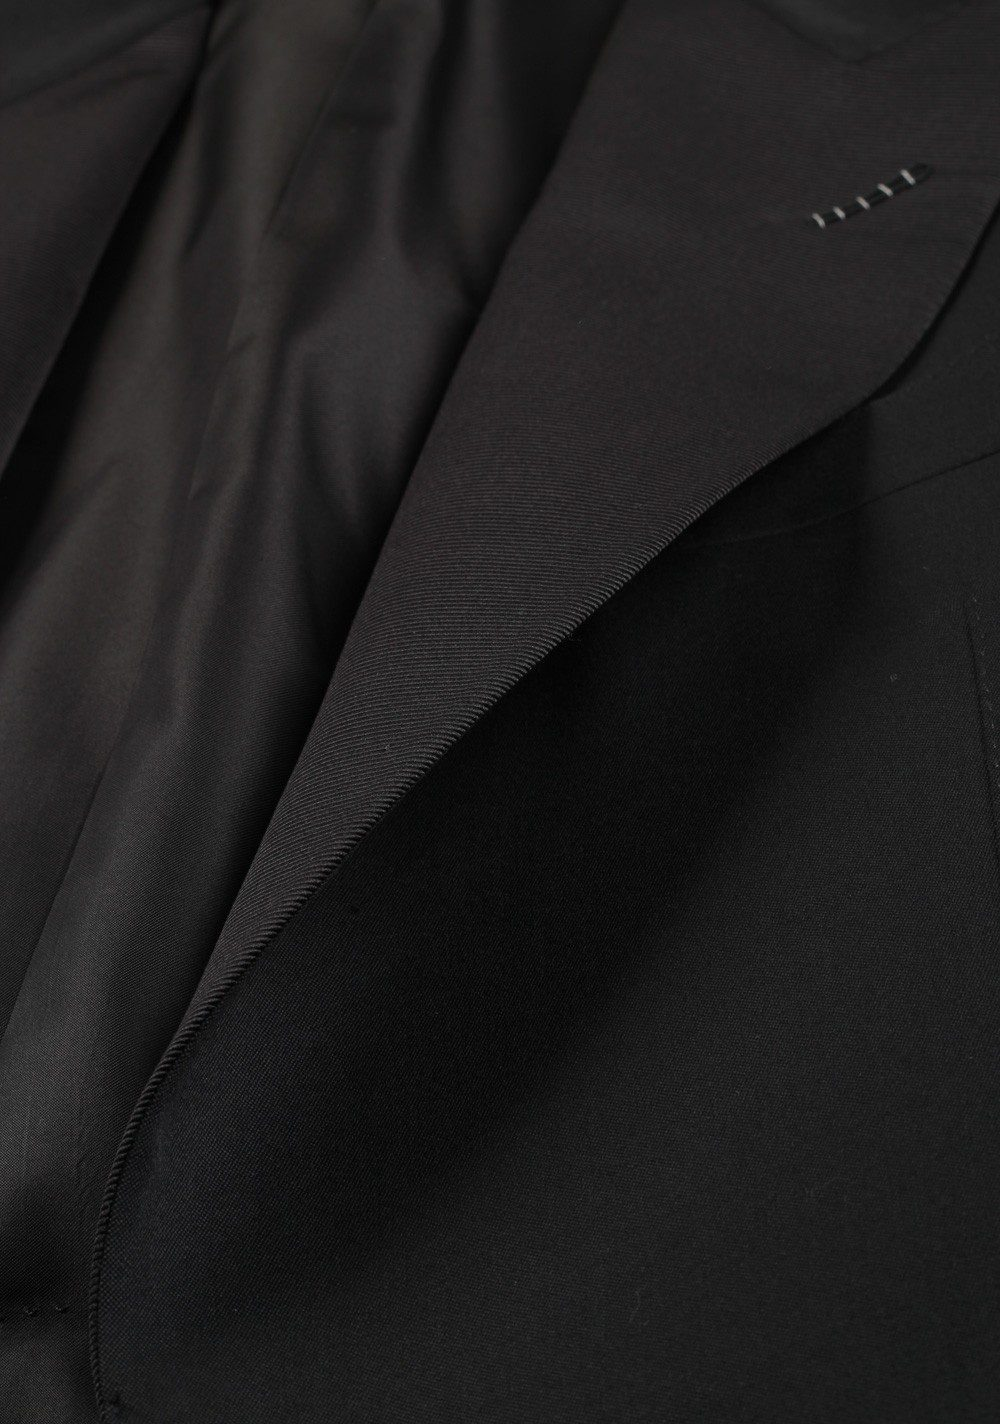 TOM FORD Windsor Black Tuxedo Smoking Suit Size 52 / 42R U.S. Fit A | Costume Limité